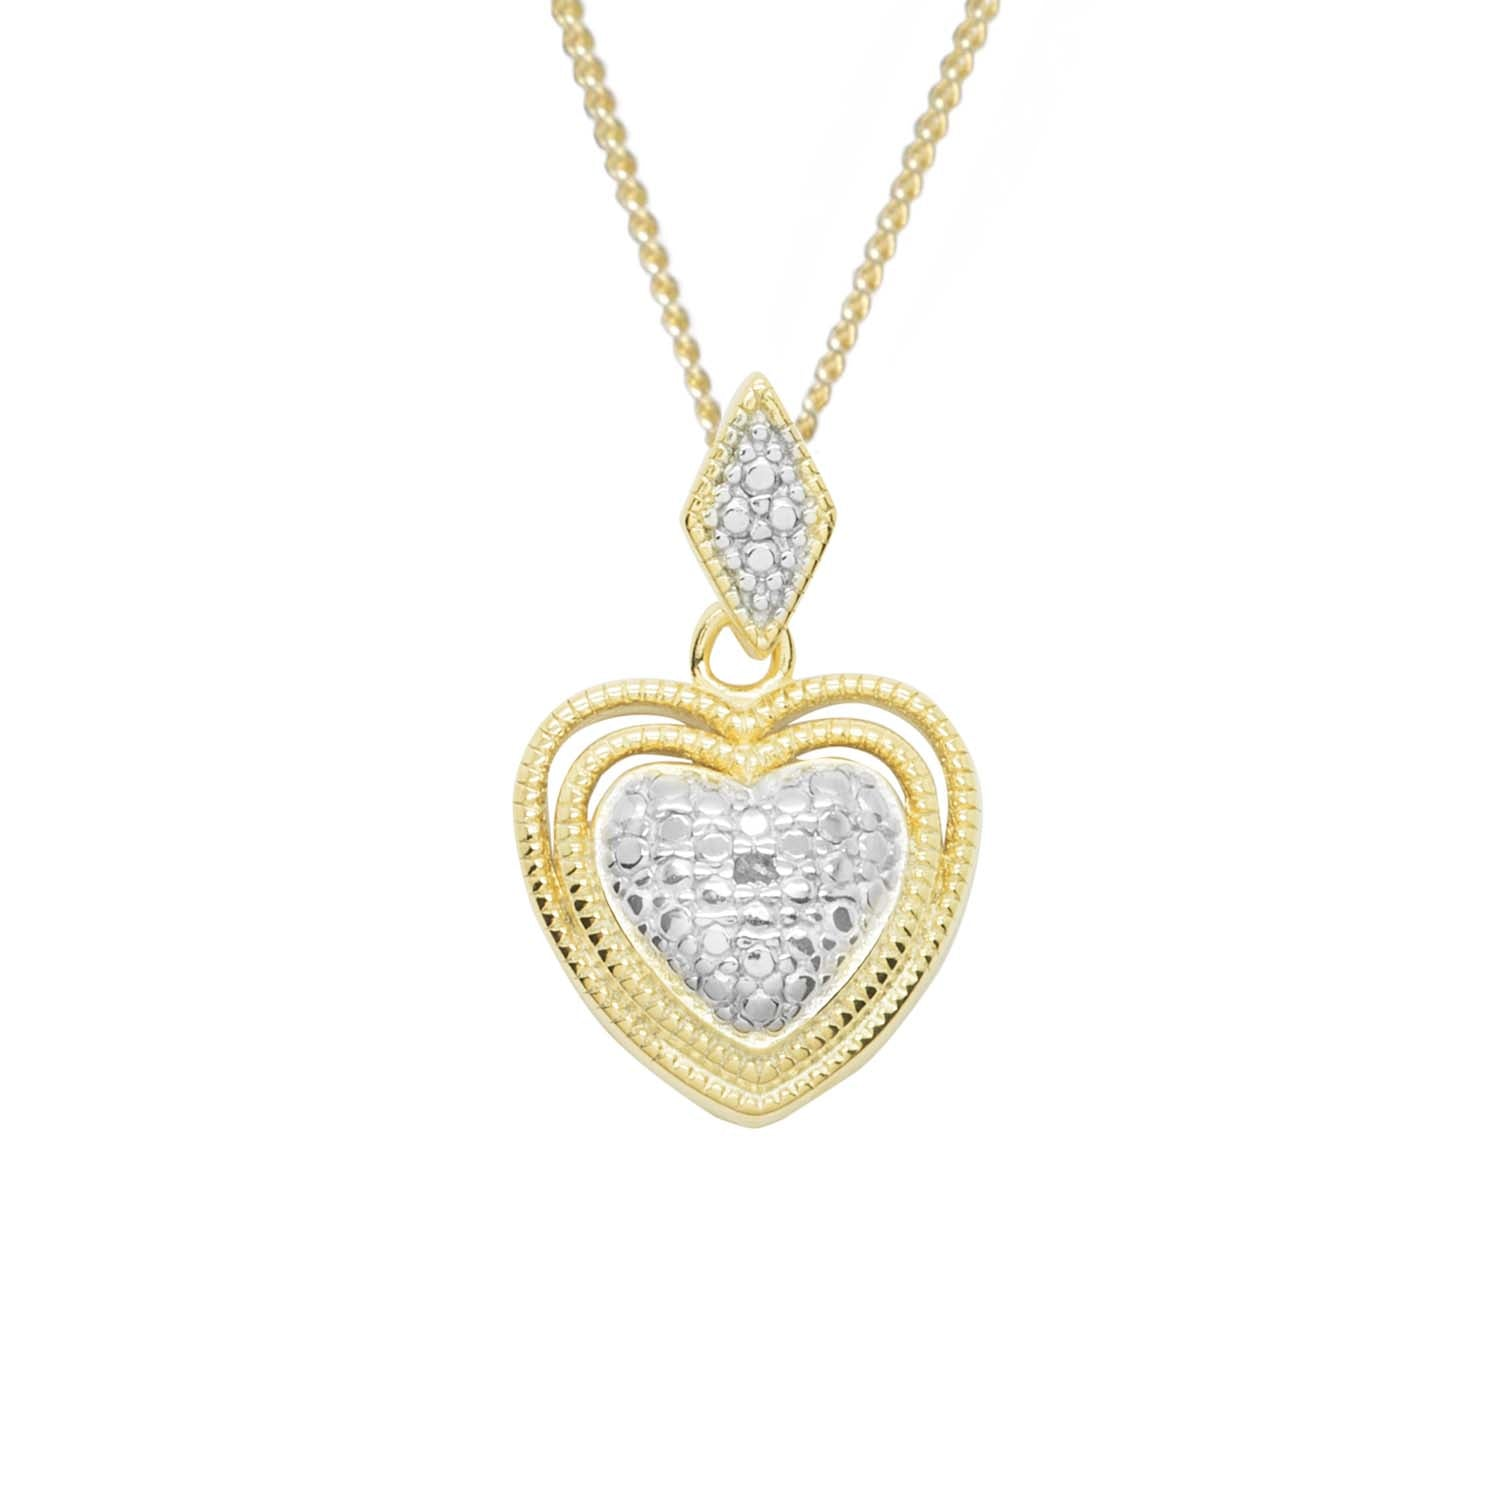 Regal heart pendant